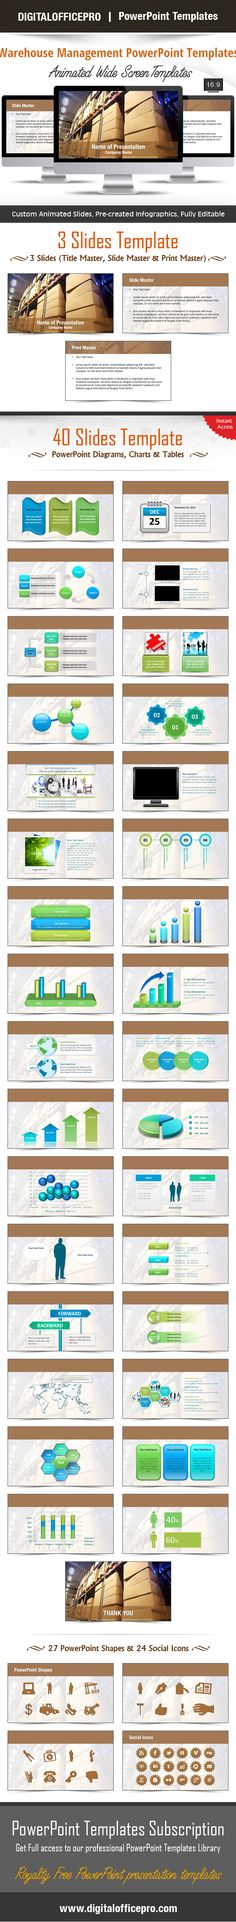 Impress and Engage your audience with Warehouse Management PowerPoint Template and Warehouse Management PowerPoint Backgrounds from DigitalOfficePro. Each template comes with a set of PowerPoint Diagrams, Charts & Shapes and are available for instant download.